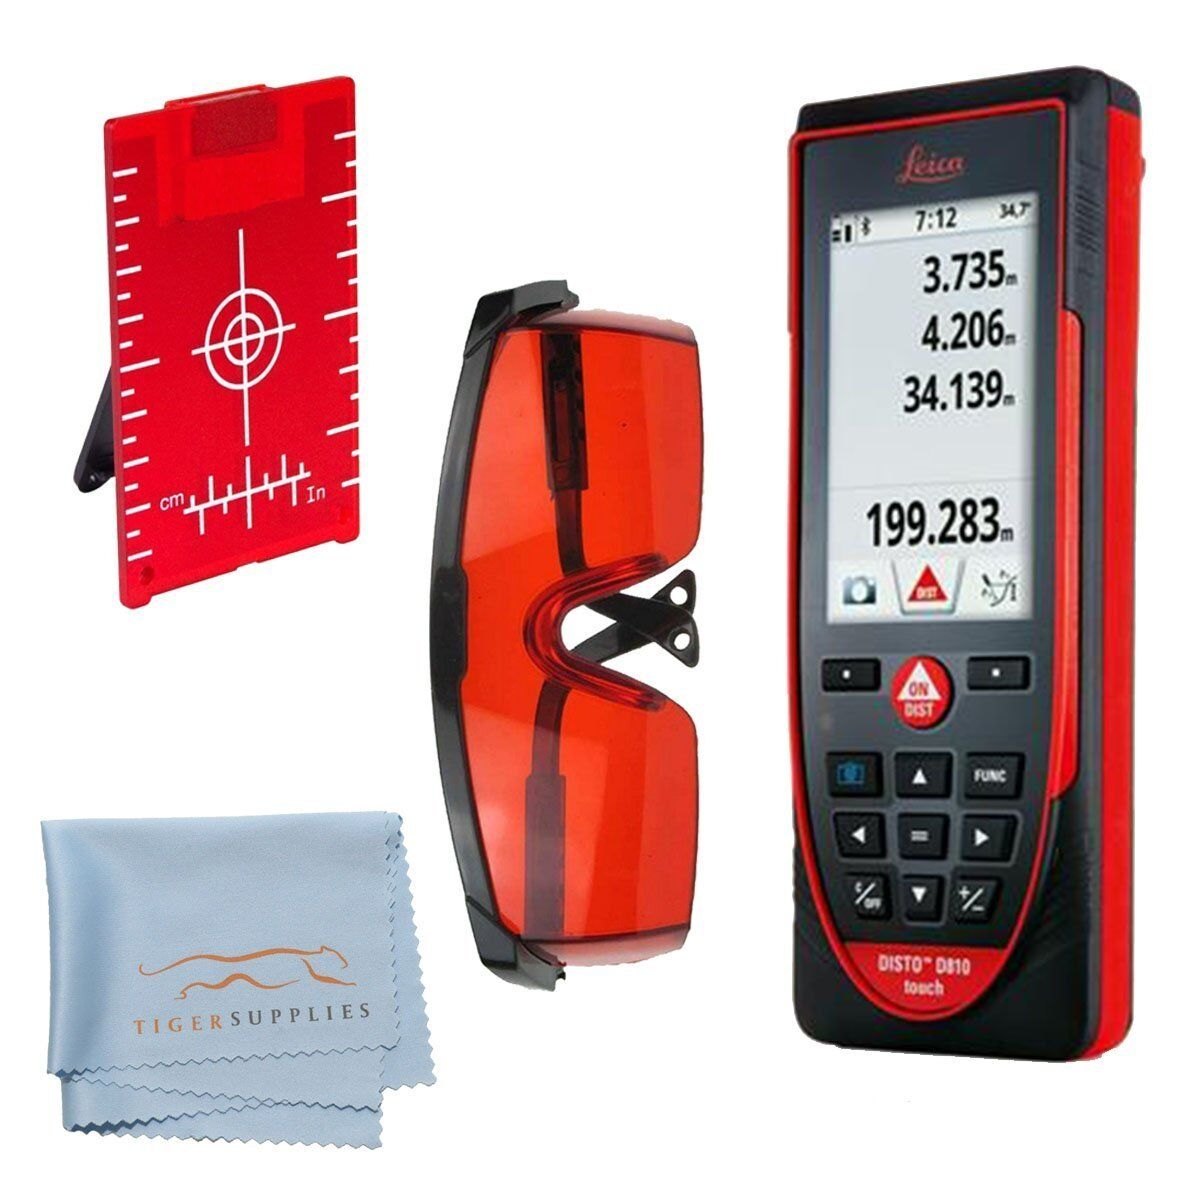 leica disto d810 touch laser distance meter touchscreen. Black Bedroom Furniture Sets. Home Design Ideas